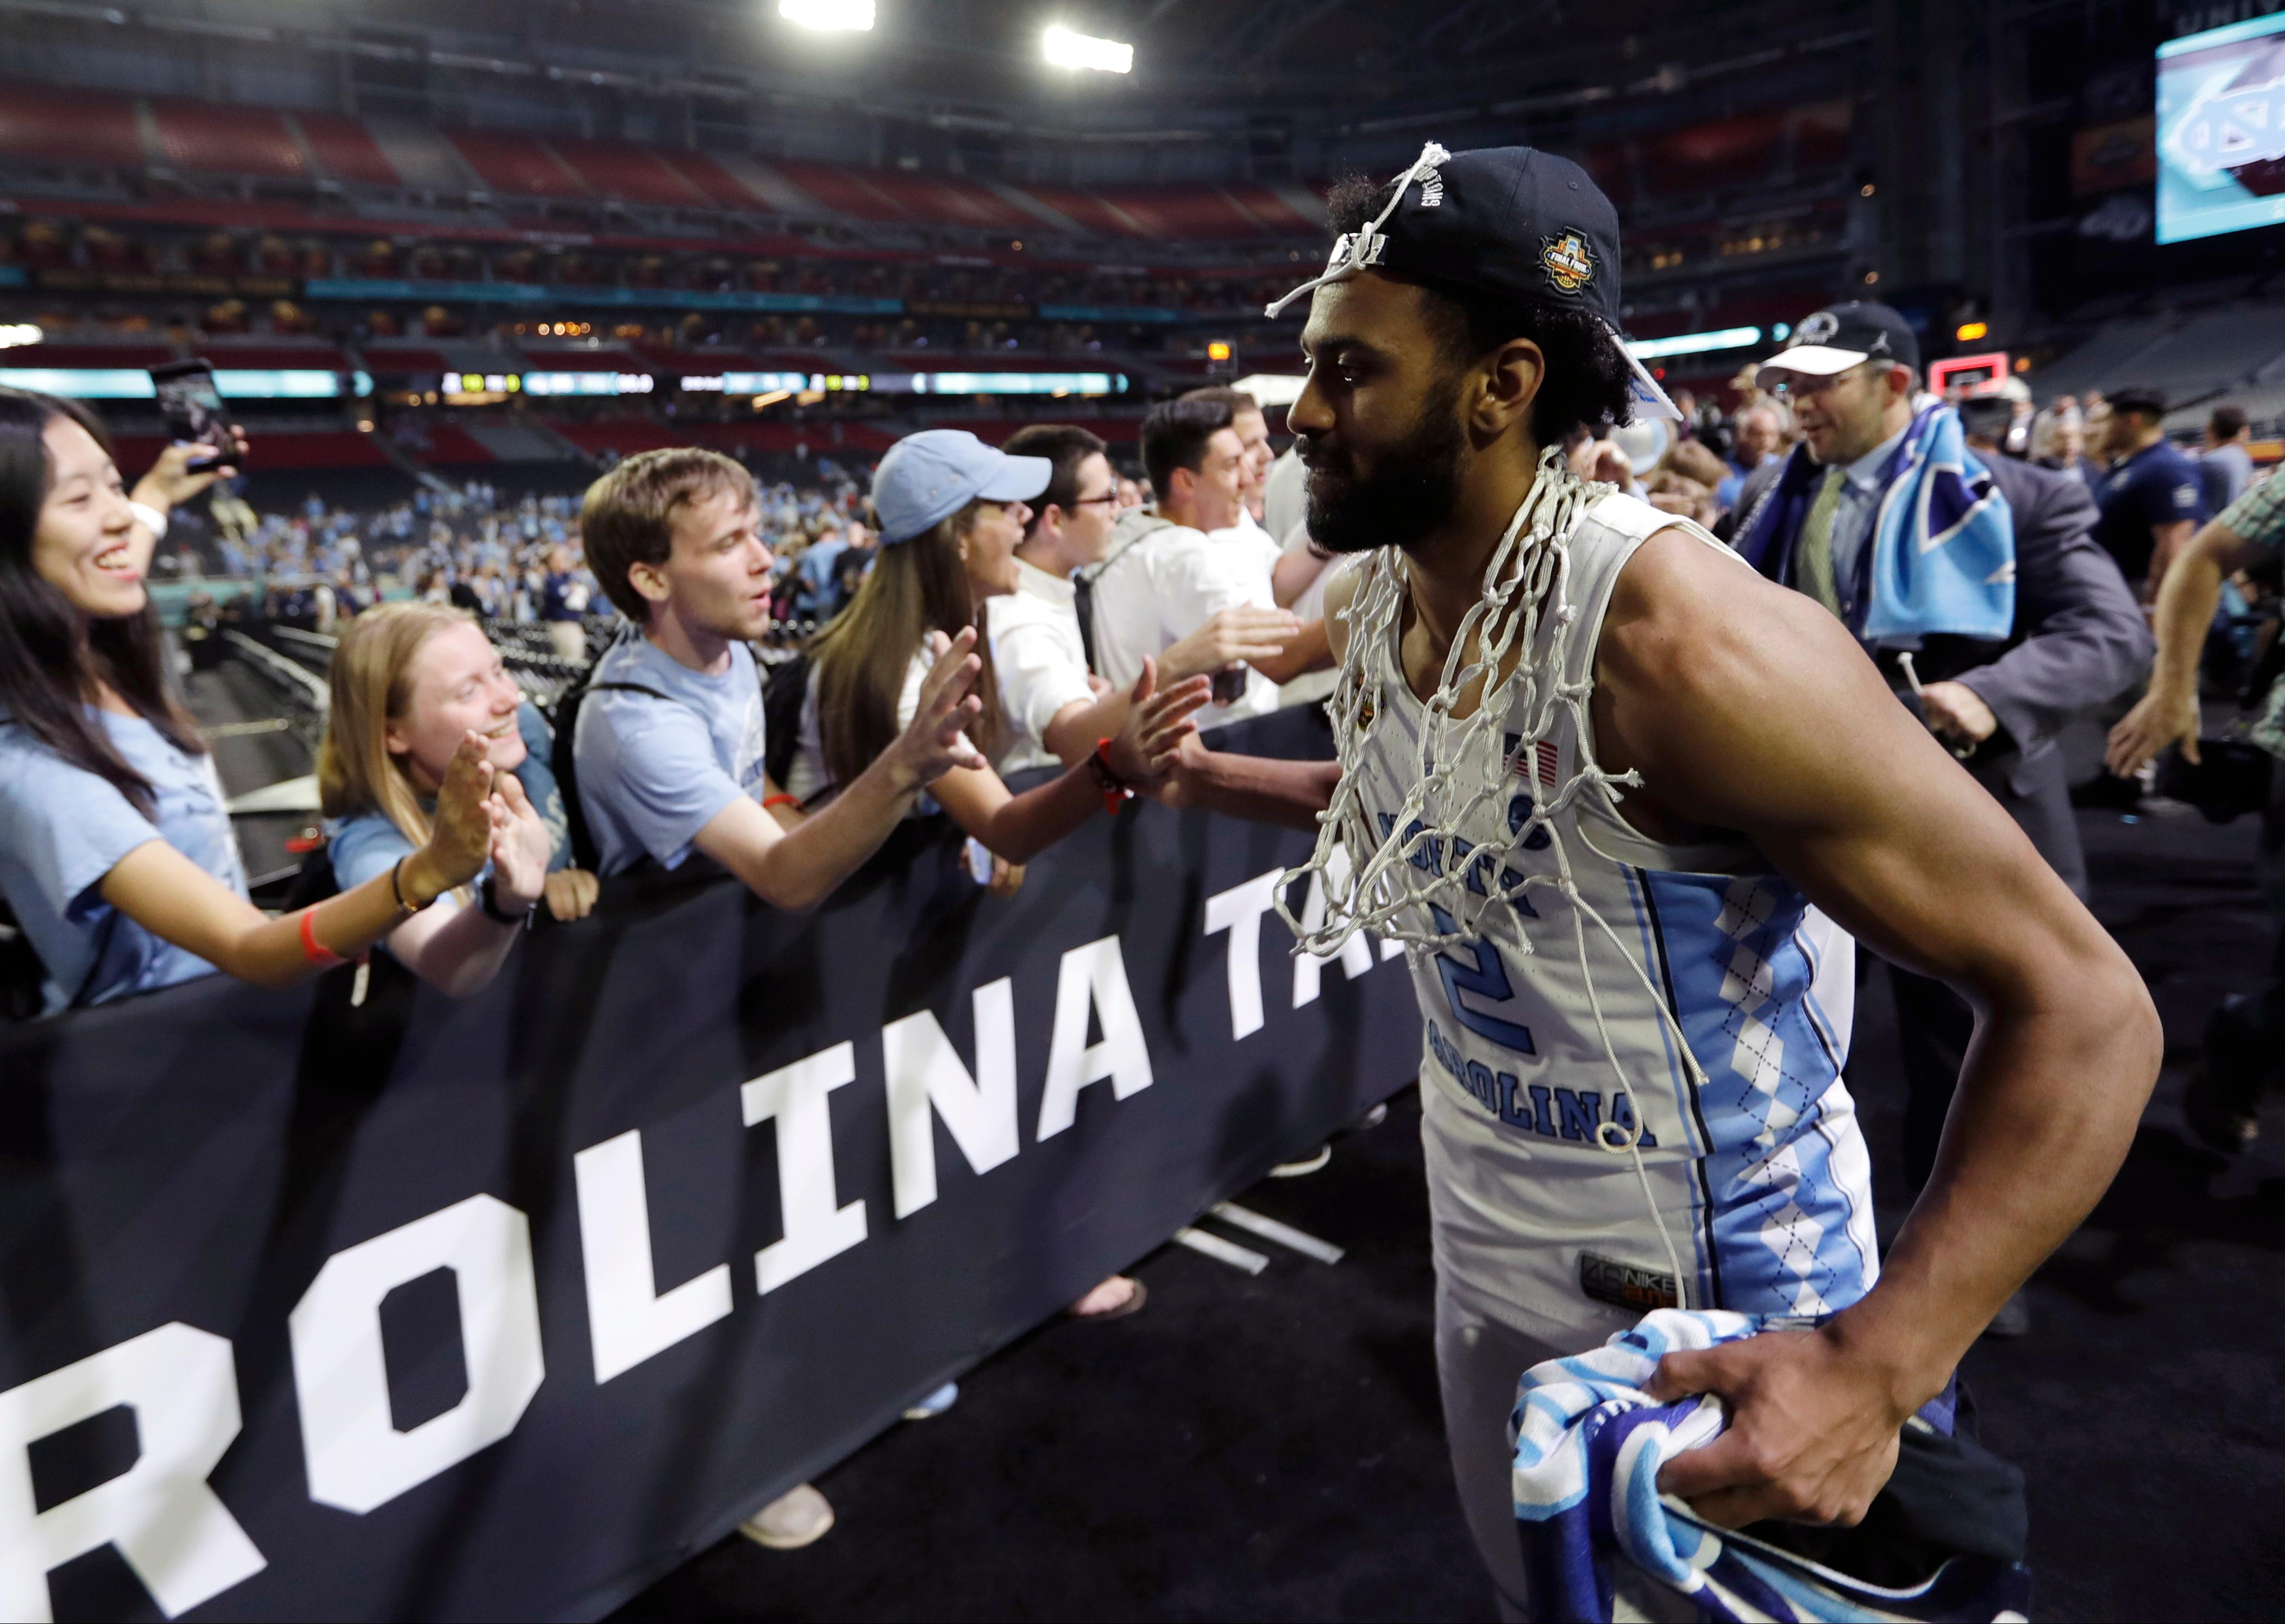 FILE - In this April 3, 2017, file photo, North Carolina guard Joel Berry II celebrates with fans after the championship game against Gonzaga at the Final Four NCAA men's college basketball tournament in Glendale, Ariz. Berry was named the most outstanding player of the Final Four after scoring 22 points and dishing out six assists with only one turnover in the Tar Heels' NCAA championship game victory over Gonzaga. He did all that despite playing the NCAA Tournament with a pair of sprained ankles. (AP Photo/David J. Phillip, File)